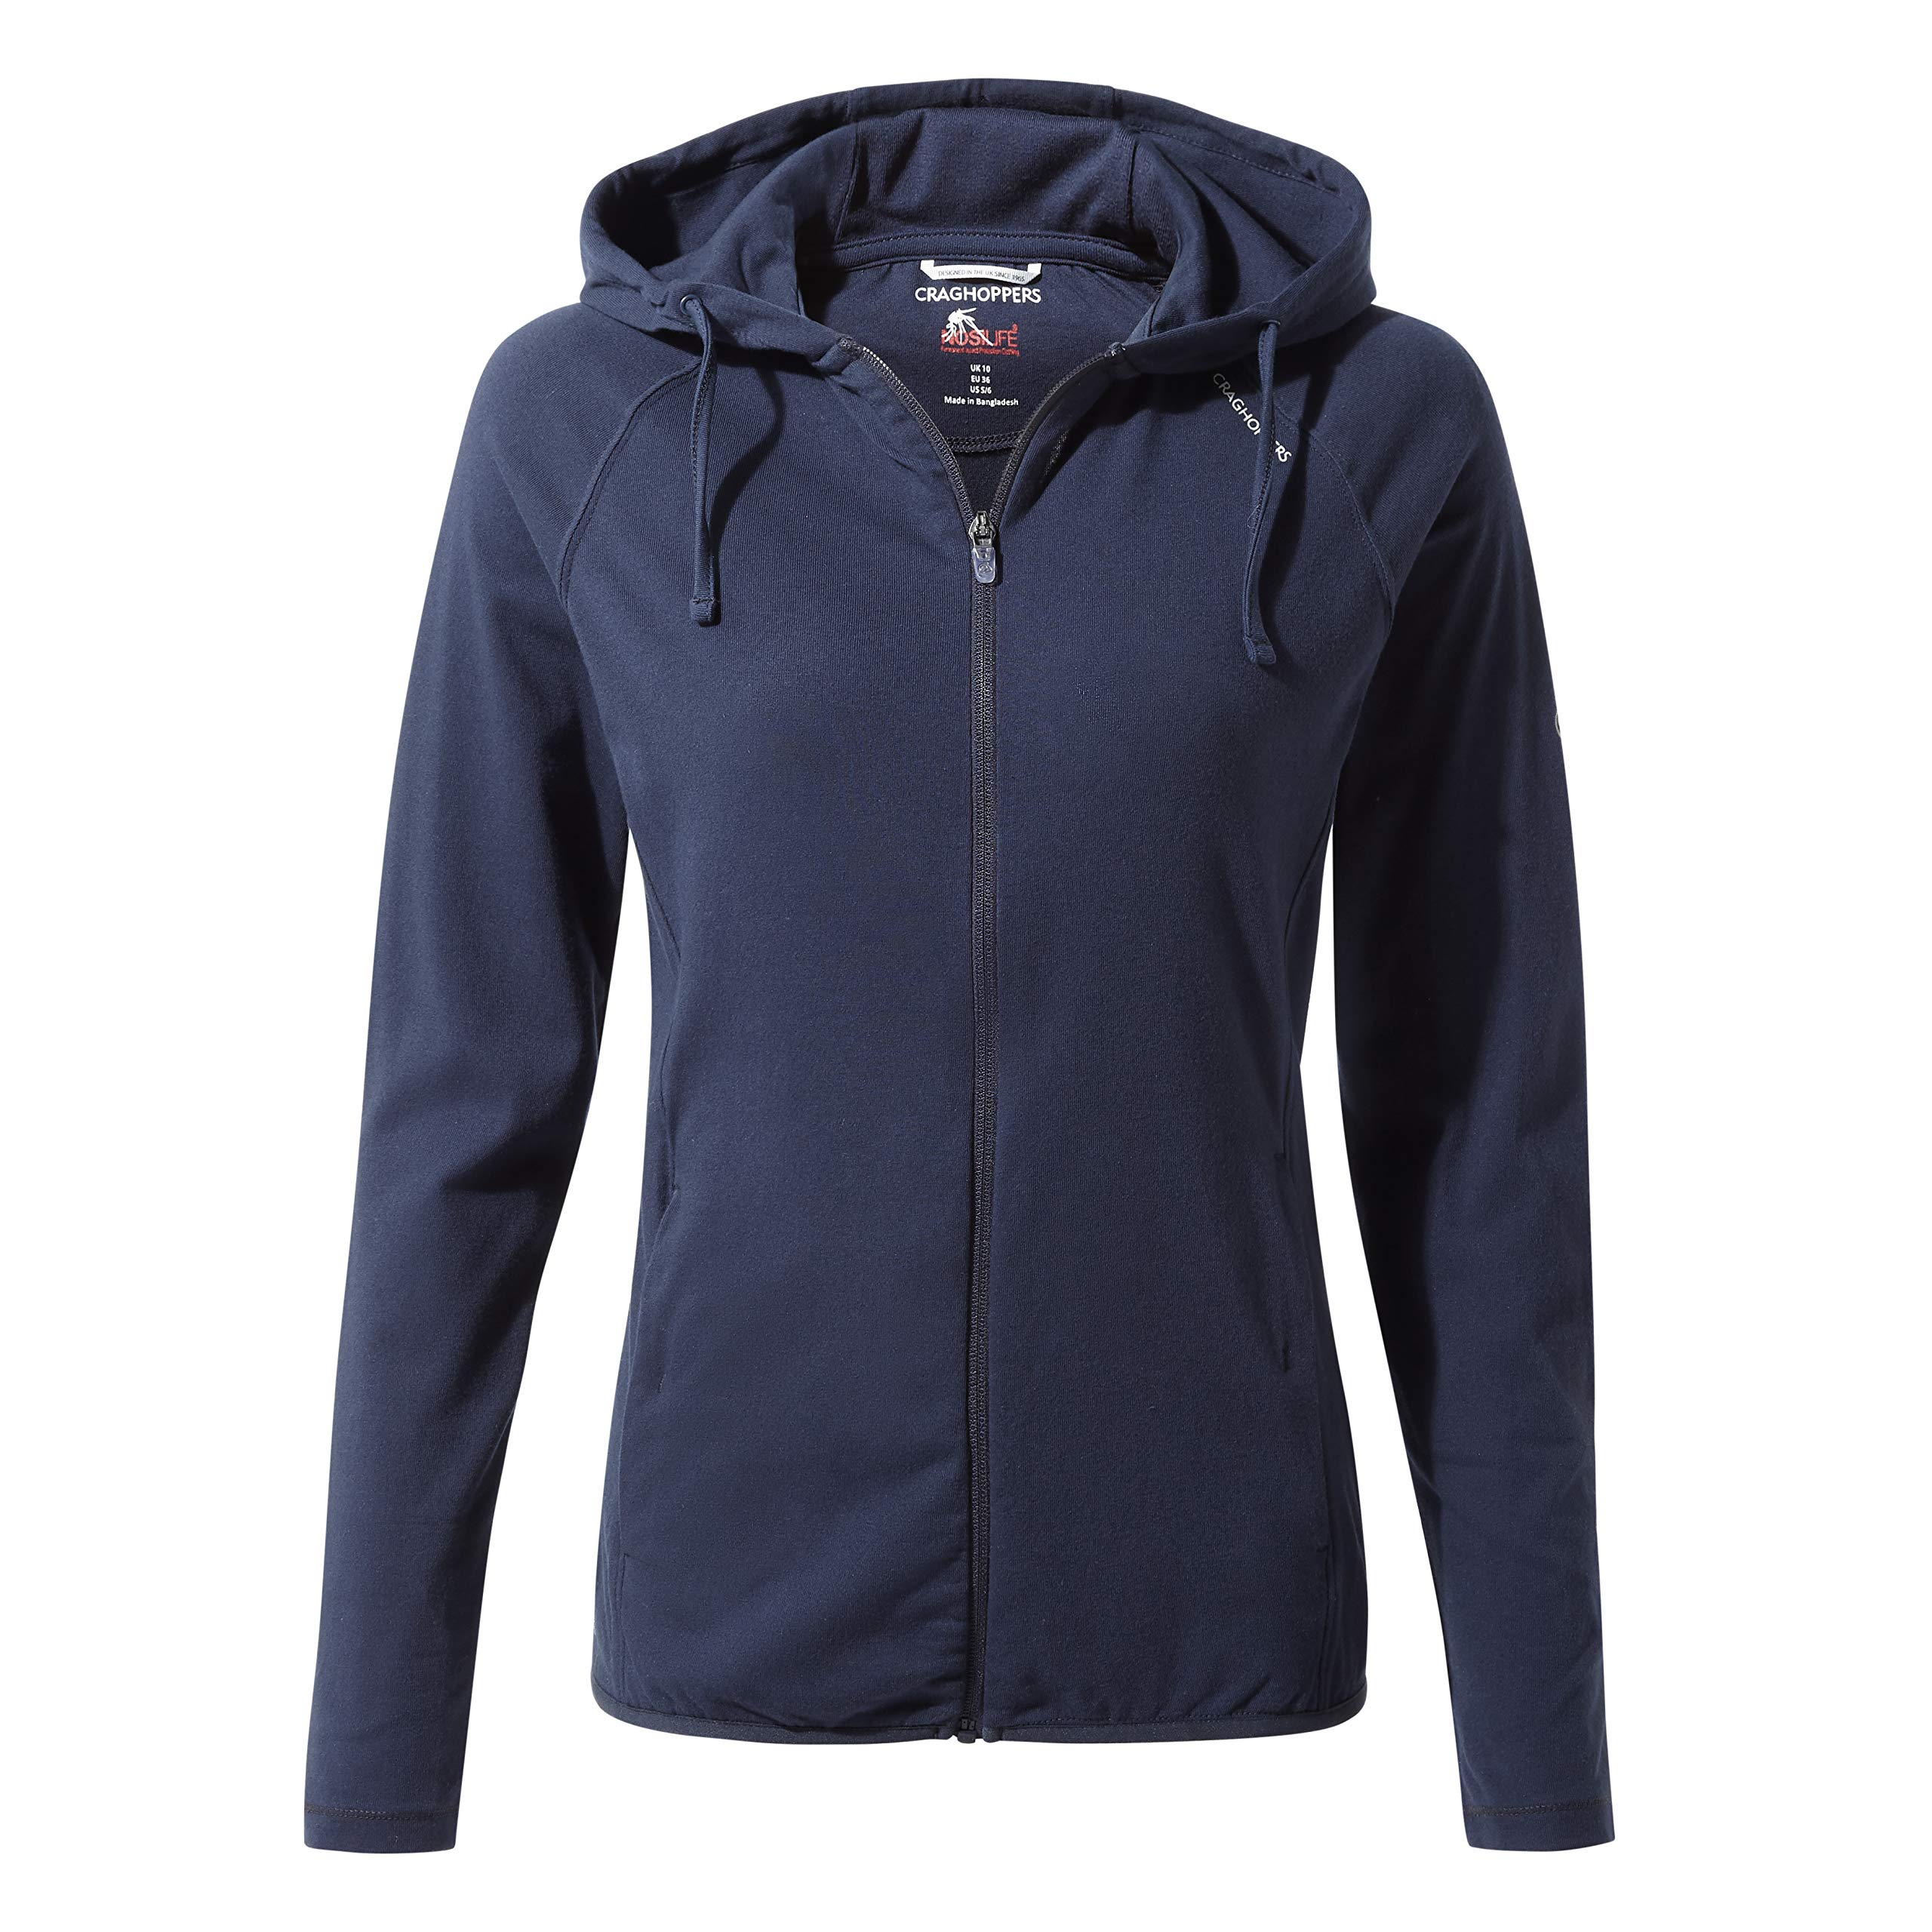 Craghoppers Sydney Hooded Top Insect Repellent Hot Climate UPF 30+ Lightweight Mid Layer Stretch